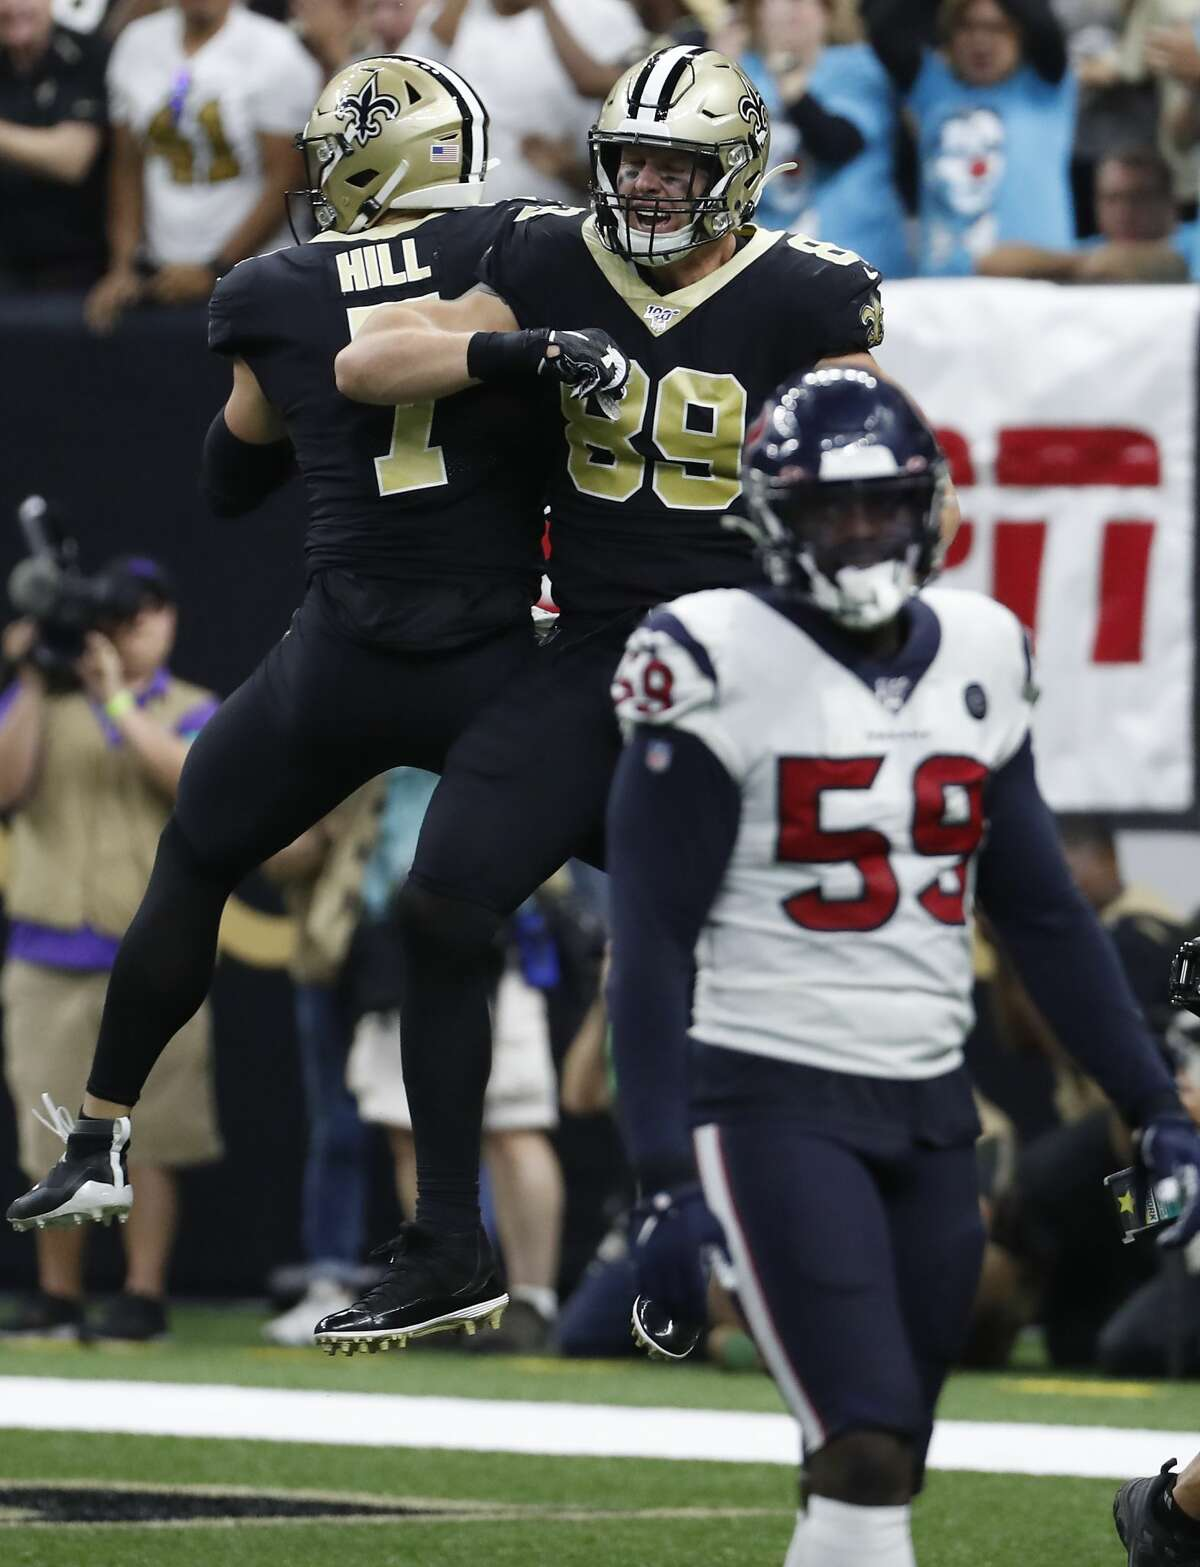 New Orleans Saints quarterback Taysom Hill (7) and tight end Josh Hill (89) celebrate Hill's 9-yard touchdown reception against the Houston Texans during the third quarter of an NFL football game at the Mercedes-Benz Superdome on Monday, Sept. 9, 2019, in New Orleans.